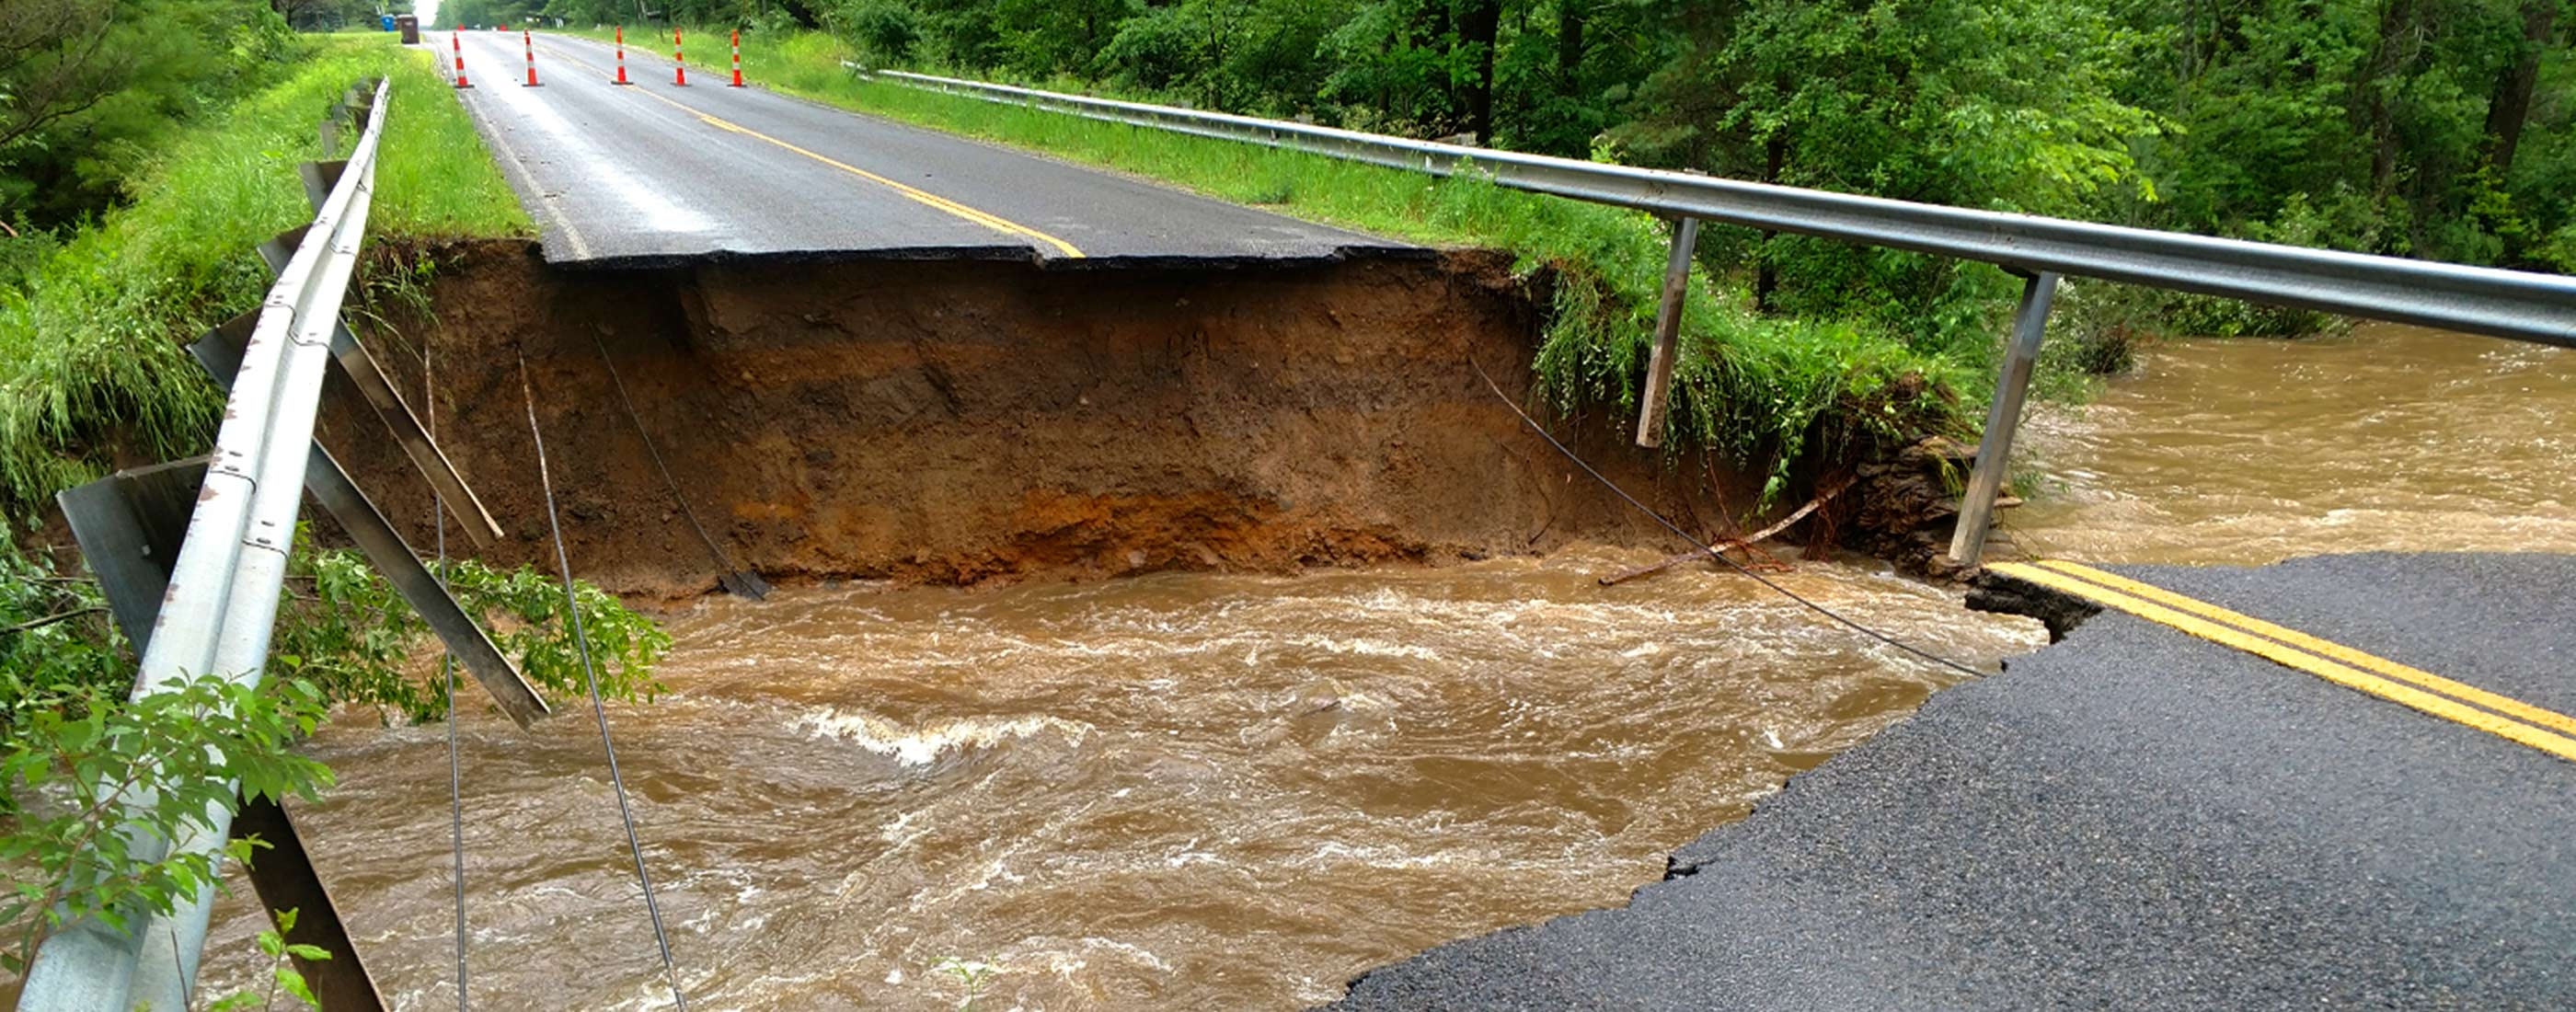 Extensive roadway damage in Midland County, Michigan after flooding.